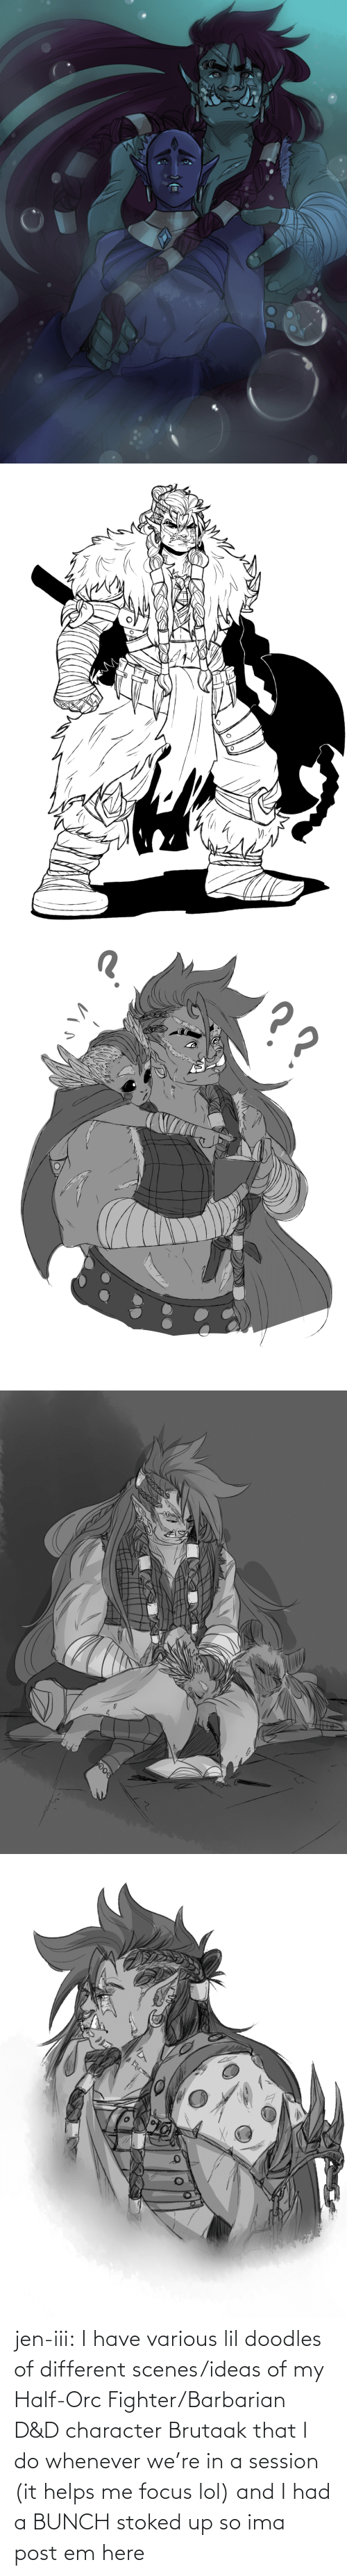 I Have: jen-iii:  I have various lil doodles of different scenes/ideas of my Half-Orc Fighter/Barbarian D&D character Brutaak that I do whenever we're in a session (it helps me focus lol) and I had a BUNCH stoked up so ima post em here